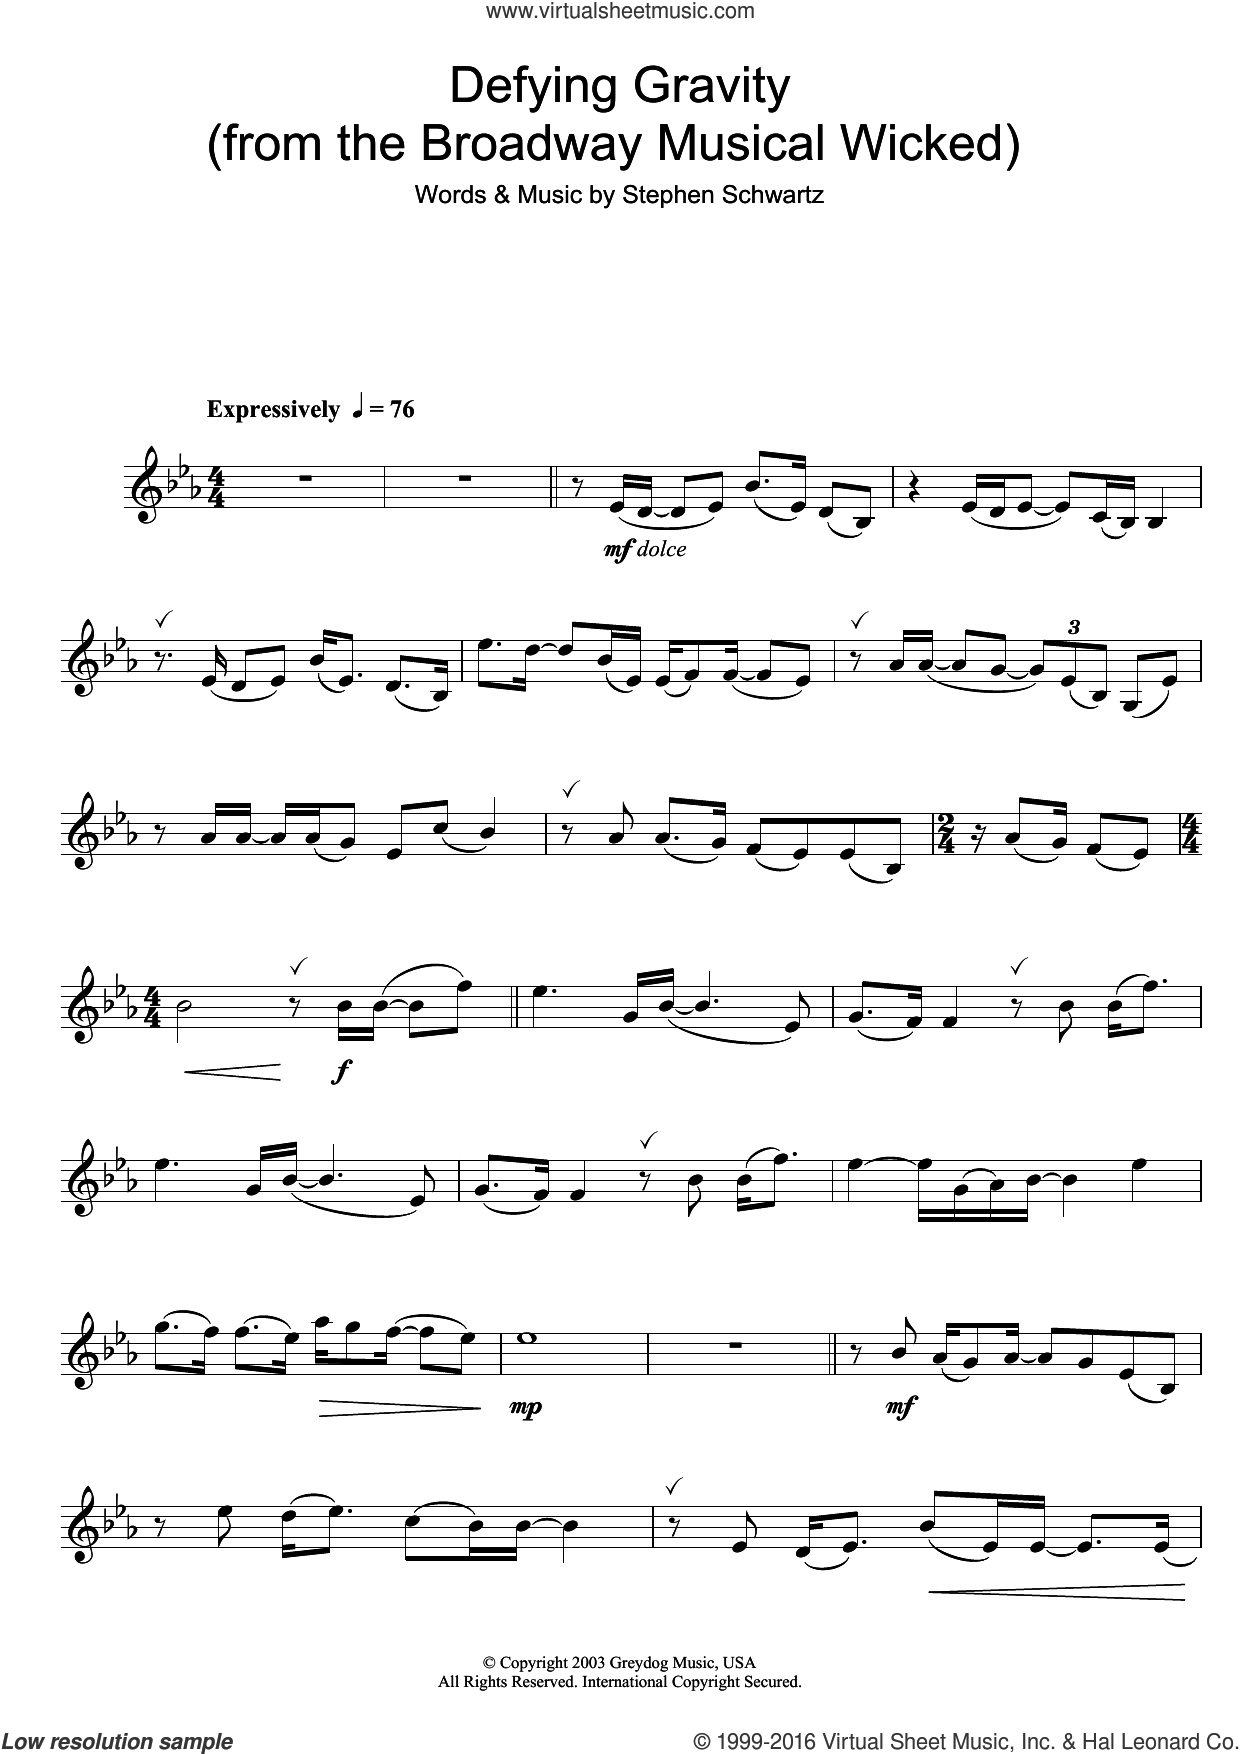 Defying Gravity (from Wicked) sheet music for trumpet solo by Glee Cast and Stephen Schwartz, intermediate skill level